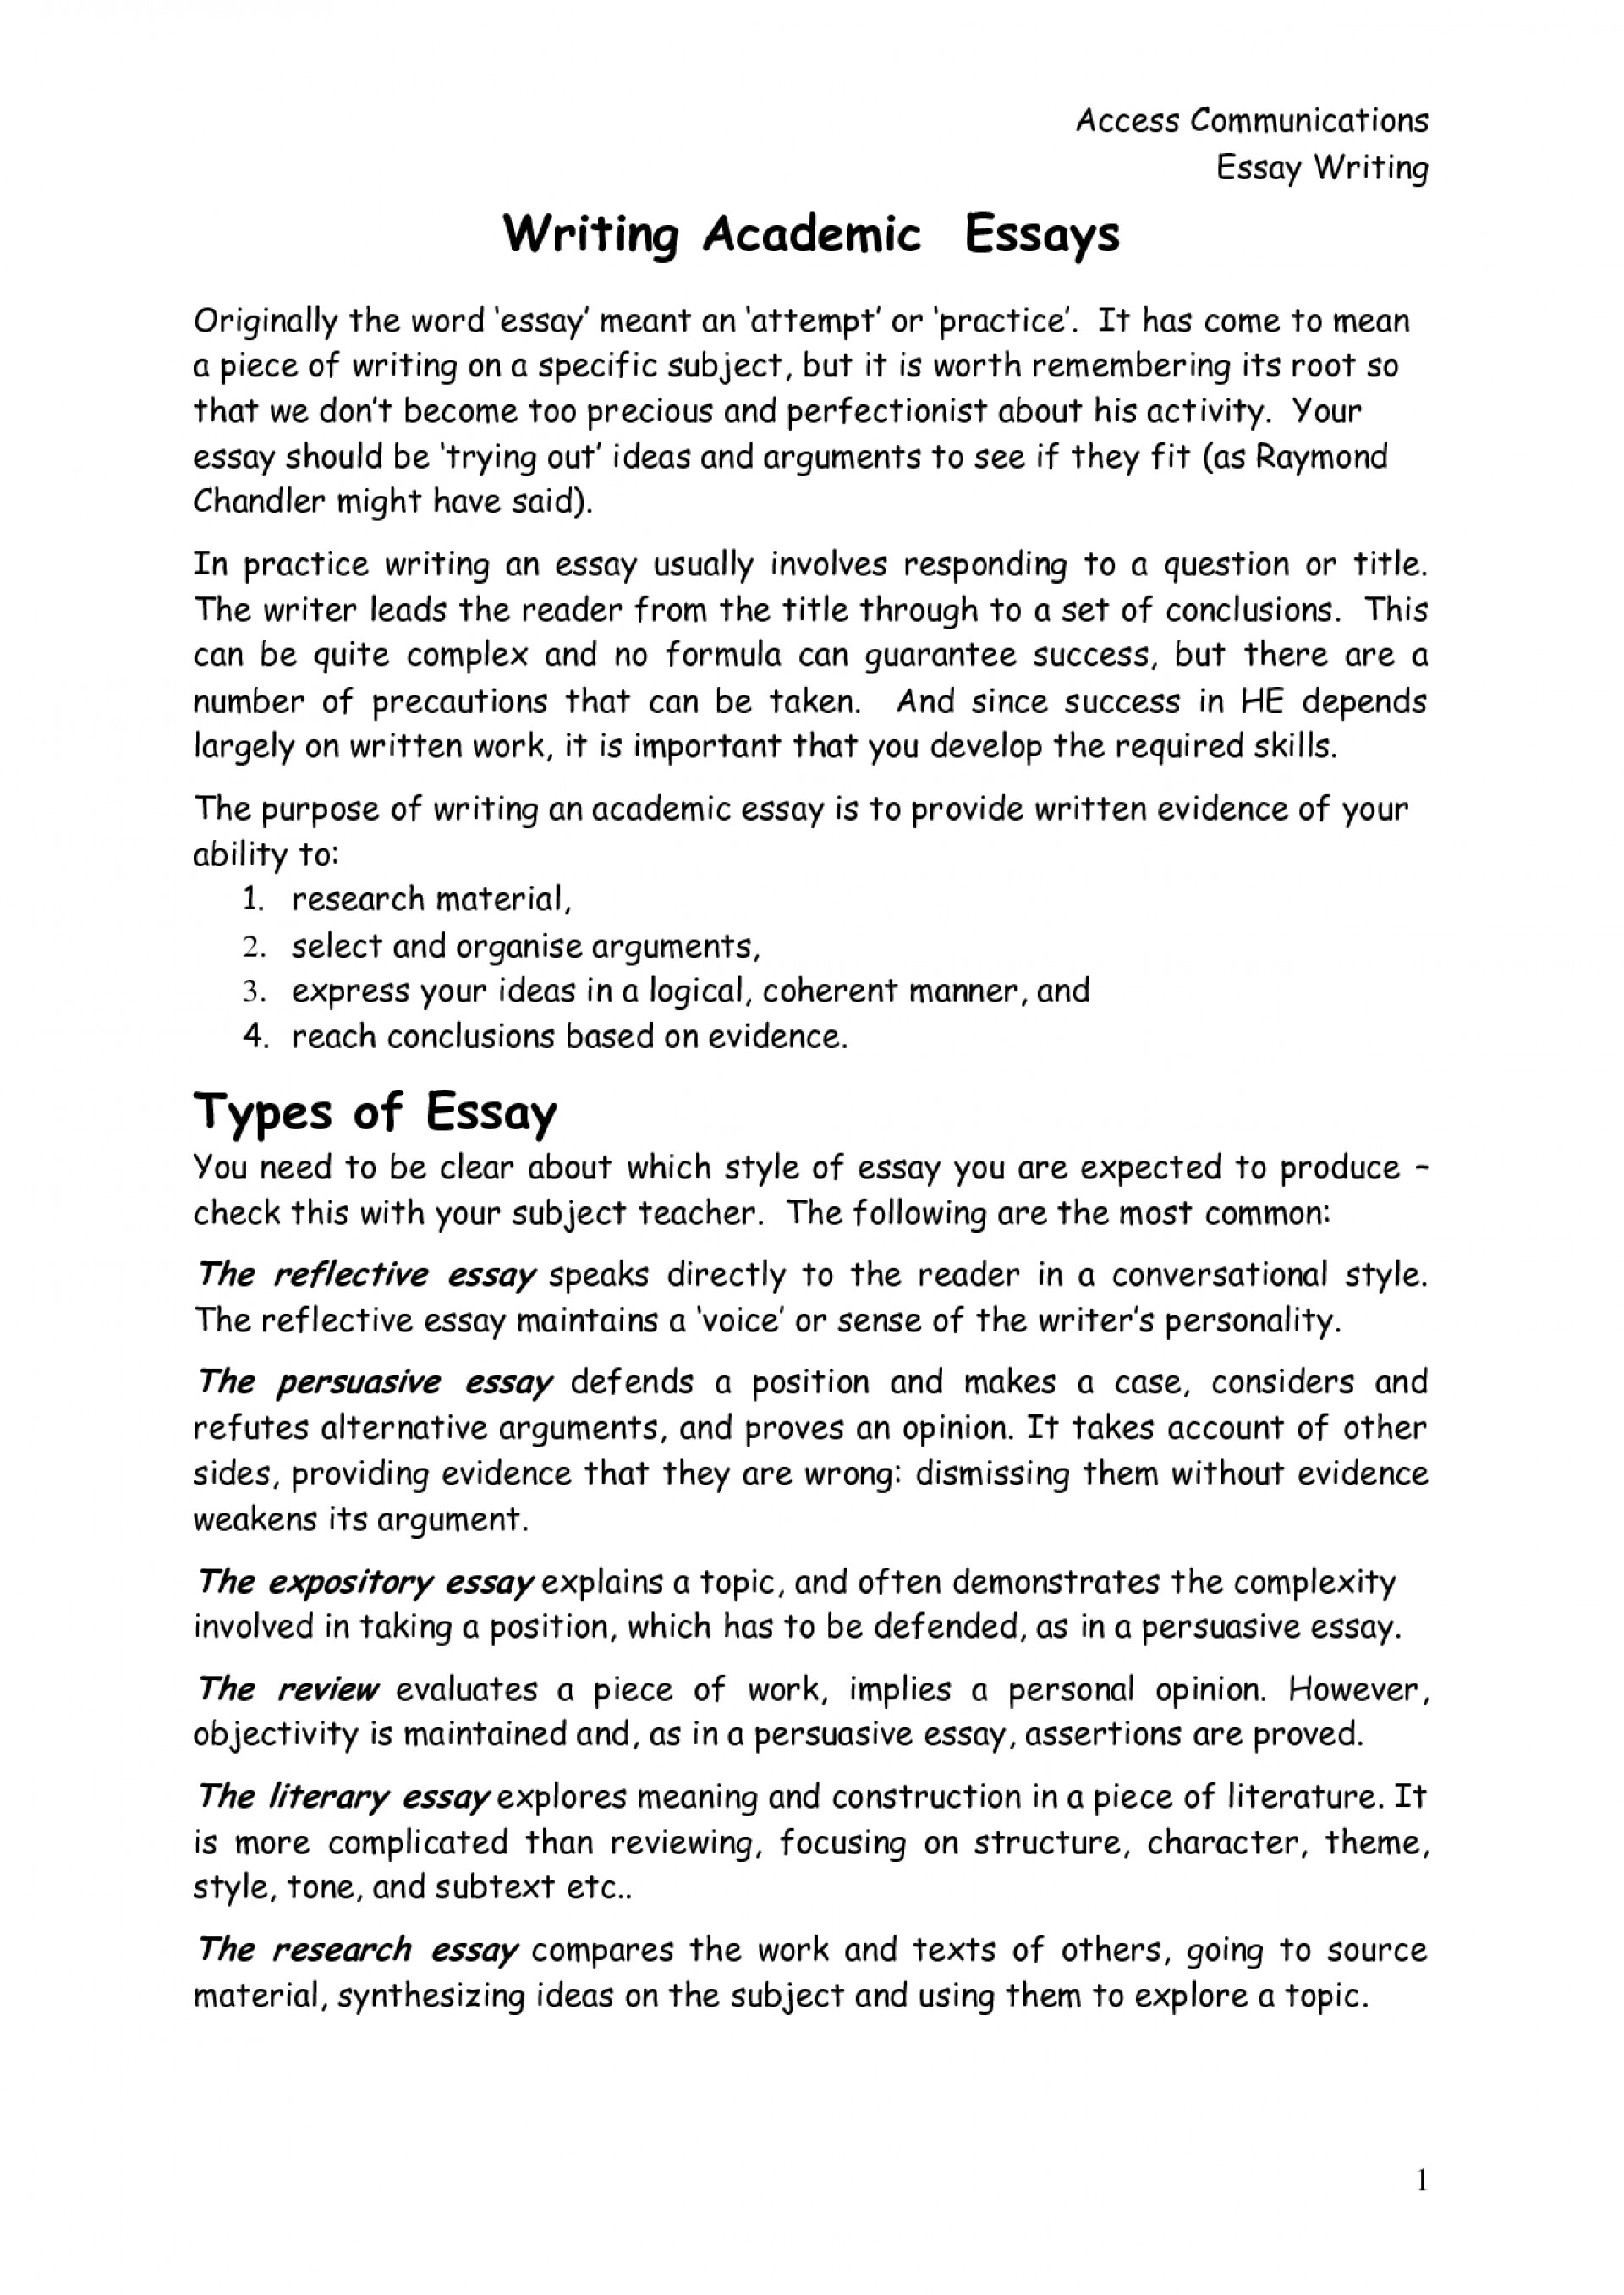 017 Essay Example Write For Me Amazing My Discount Code Online Free 1920